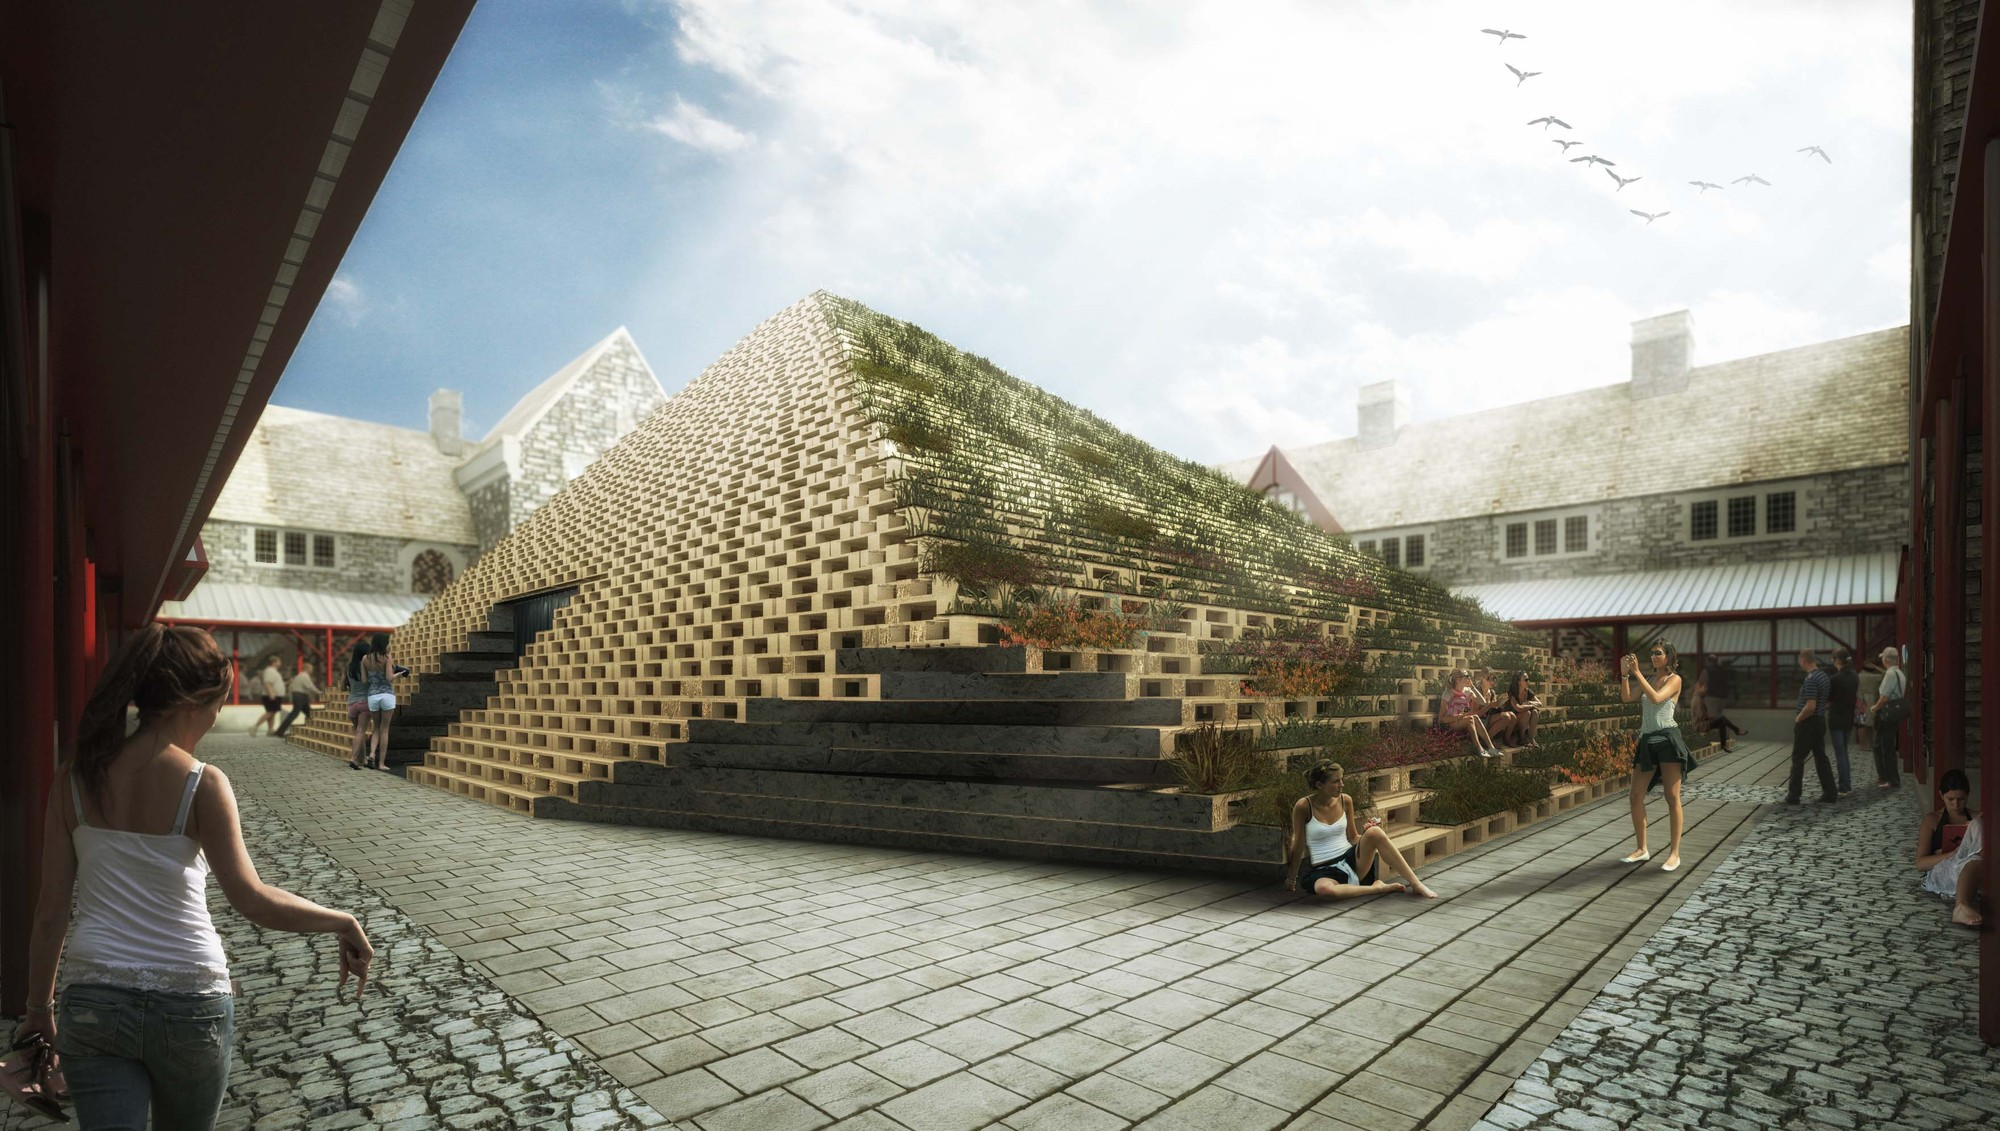 Temporal Sustainable Theatre Finalist Proposal / PM²G Architects, © 3D Veron